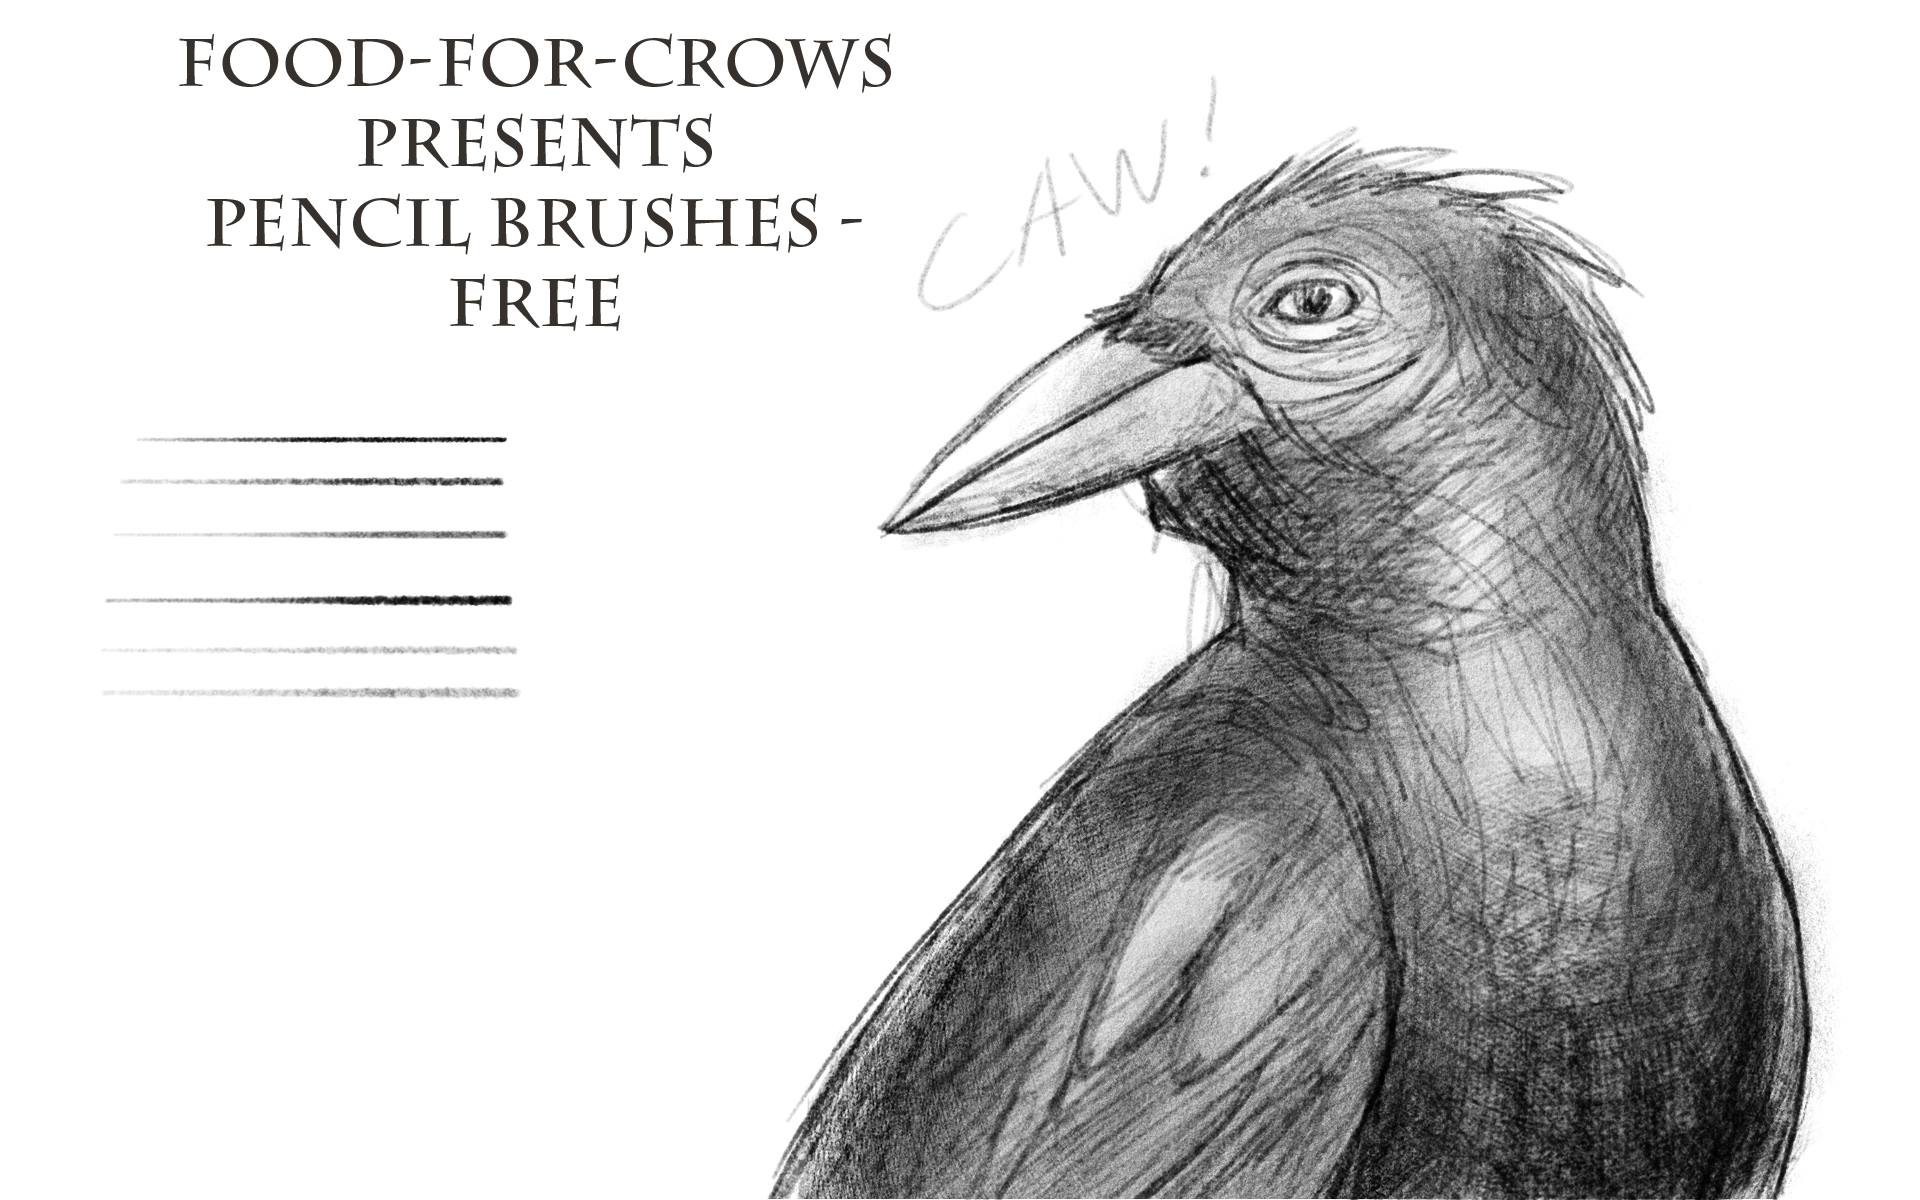 Pencil brushes free by food for crows